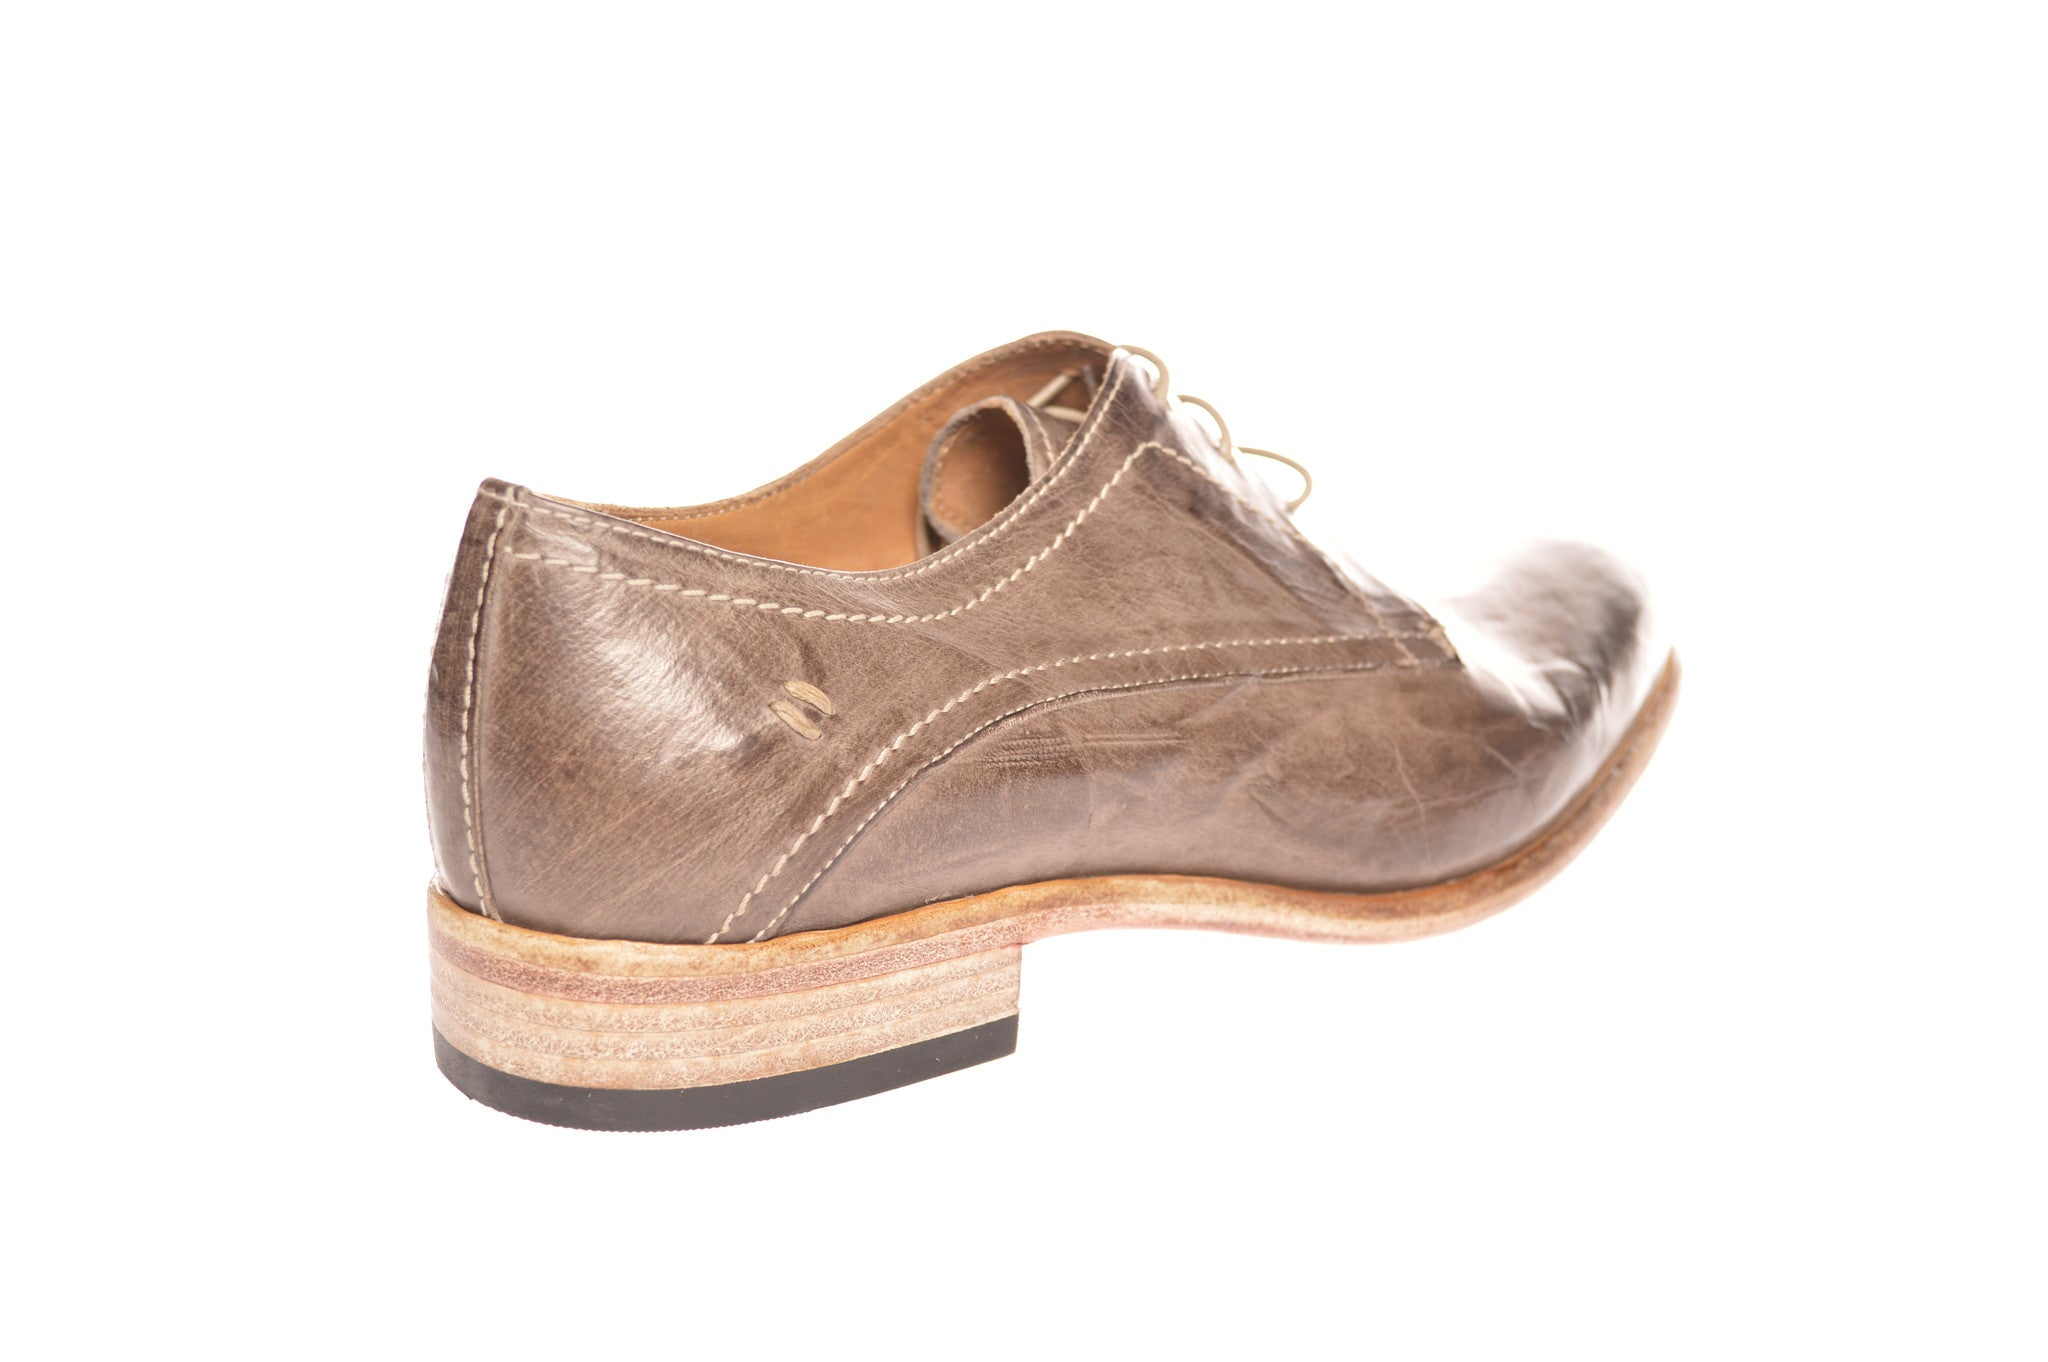 Lorenzi Women Shoes / BURATTATO CARSON MOUSE